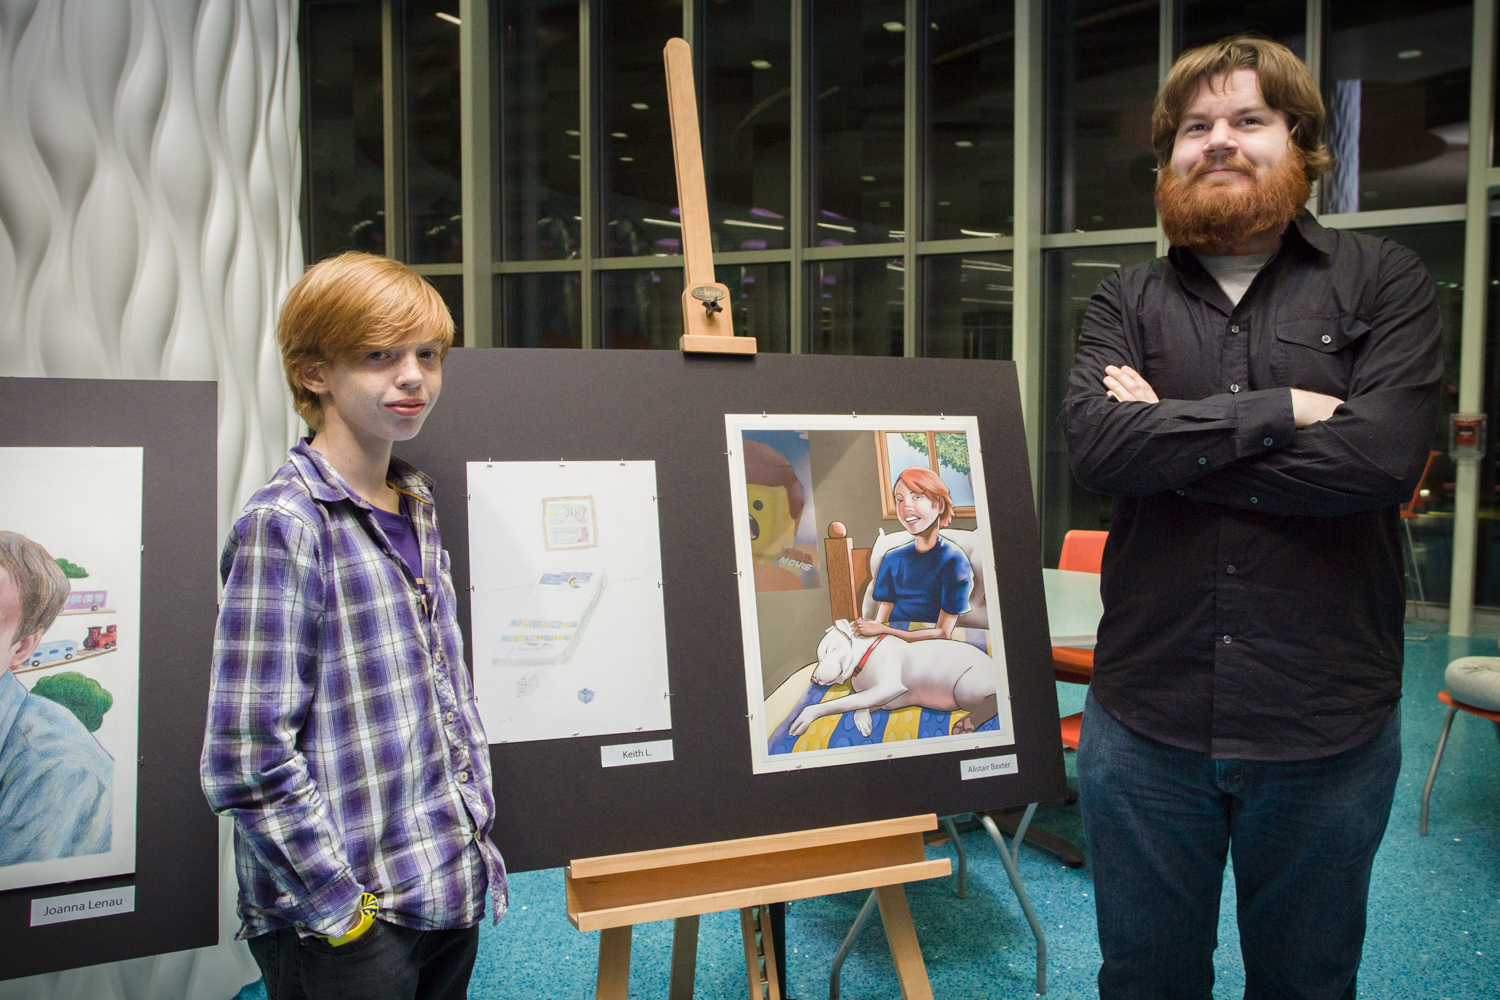 KCAD student Alistair Baxter and Keith, a patient a DeVos Children's hospital